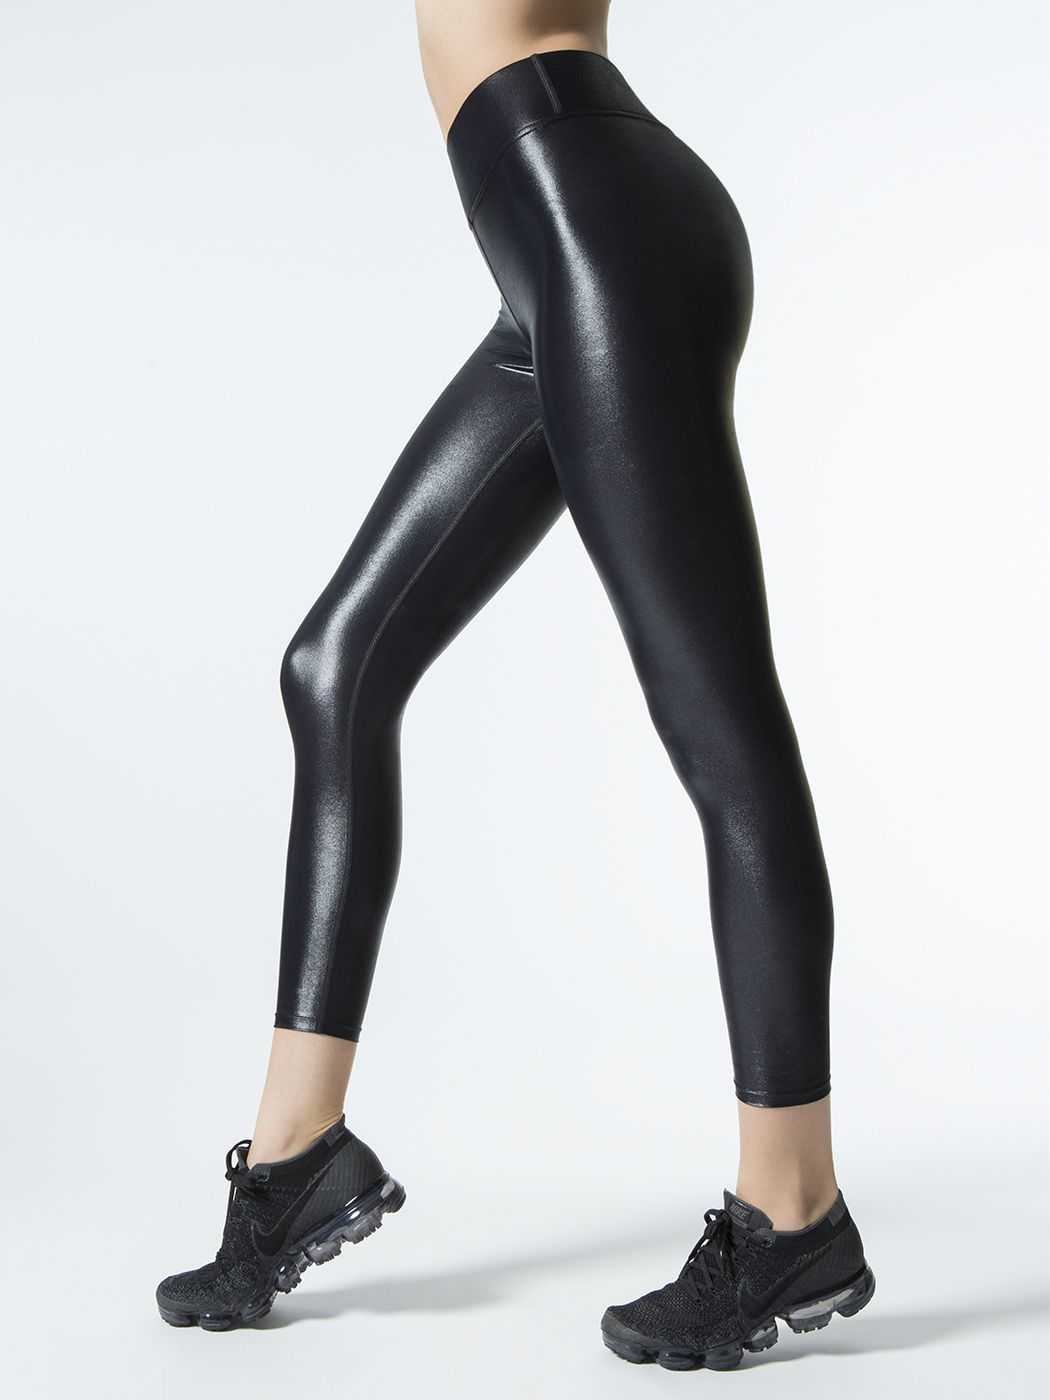 7bf20ed06d2be 7/8 Length Takara 7/8 Length Leggings in Black by Carbon38 from Carbon38